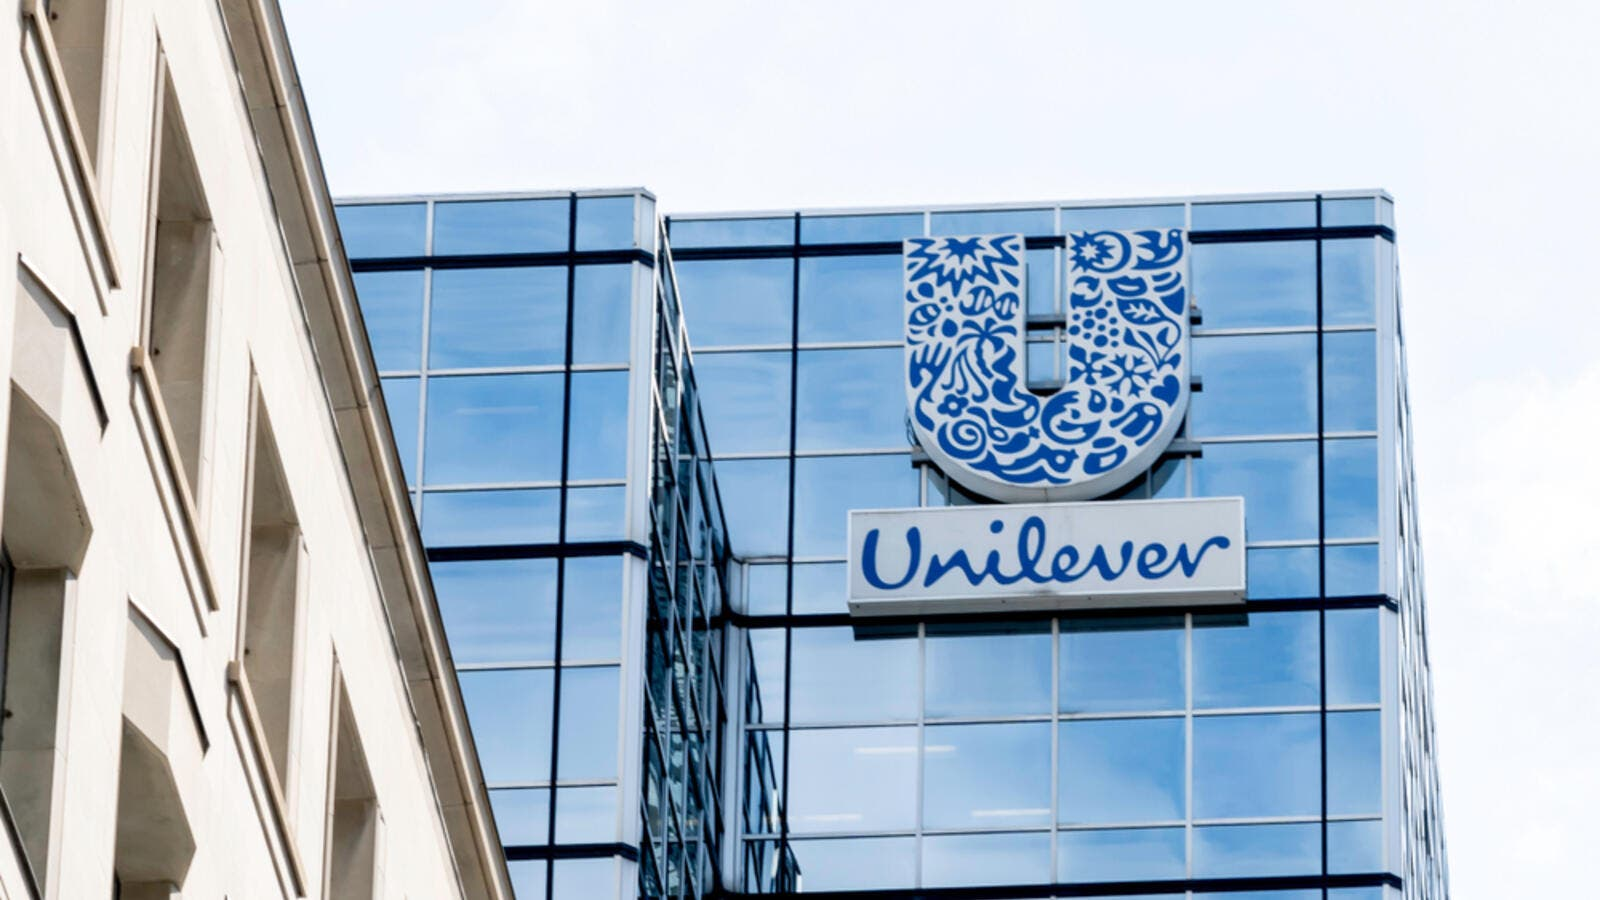 Unilever to invest 1 bln euros in climate fund over 10 years